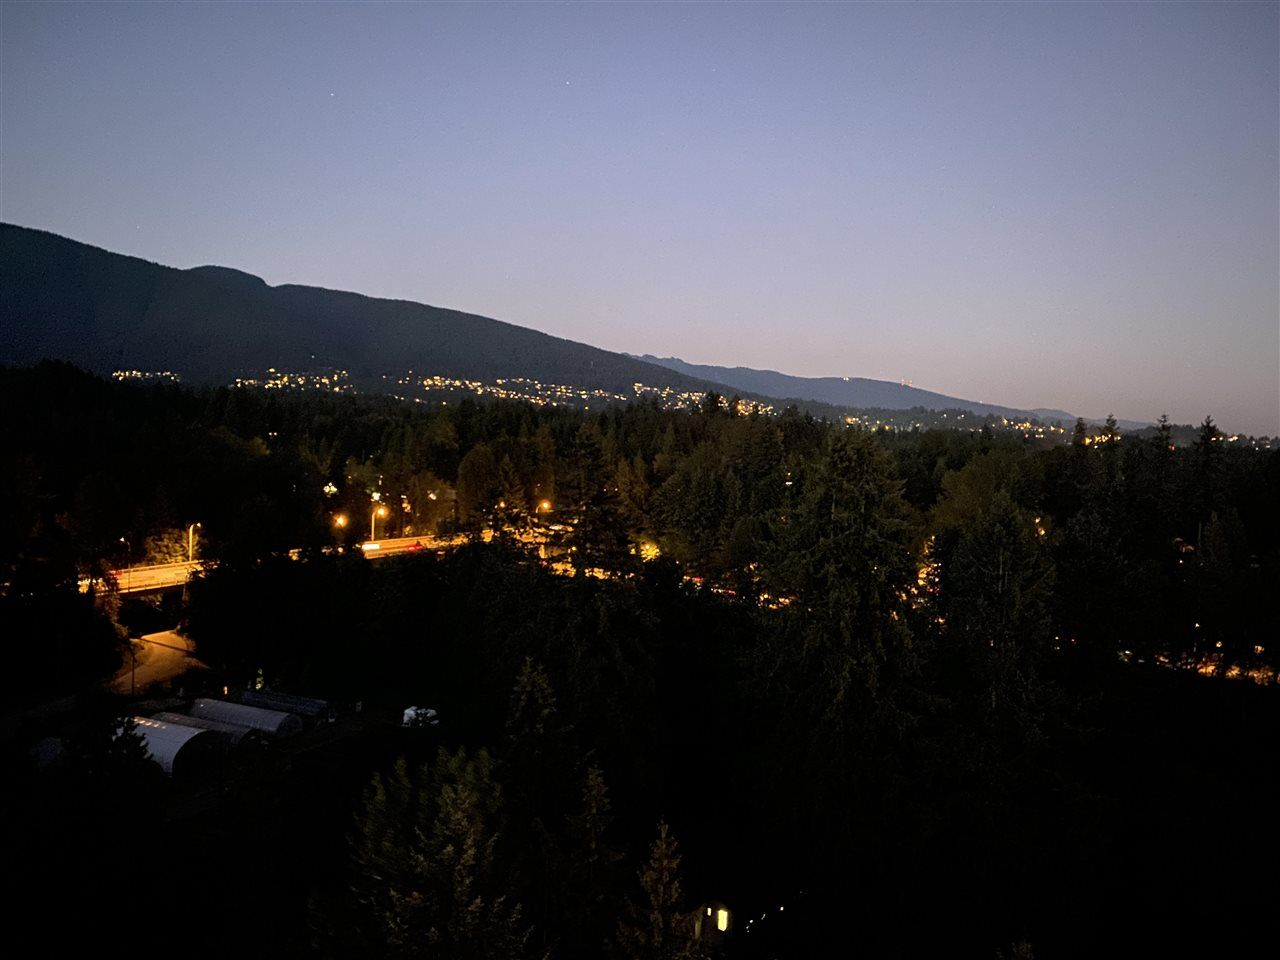 """Main Photo: 1905 2008 FULLERTON Avenue in North Vancouver: Pemberton NV Condo for sale in """"WOODCROFT"""" : MLS®# R2495775"""